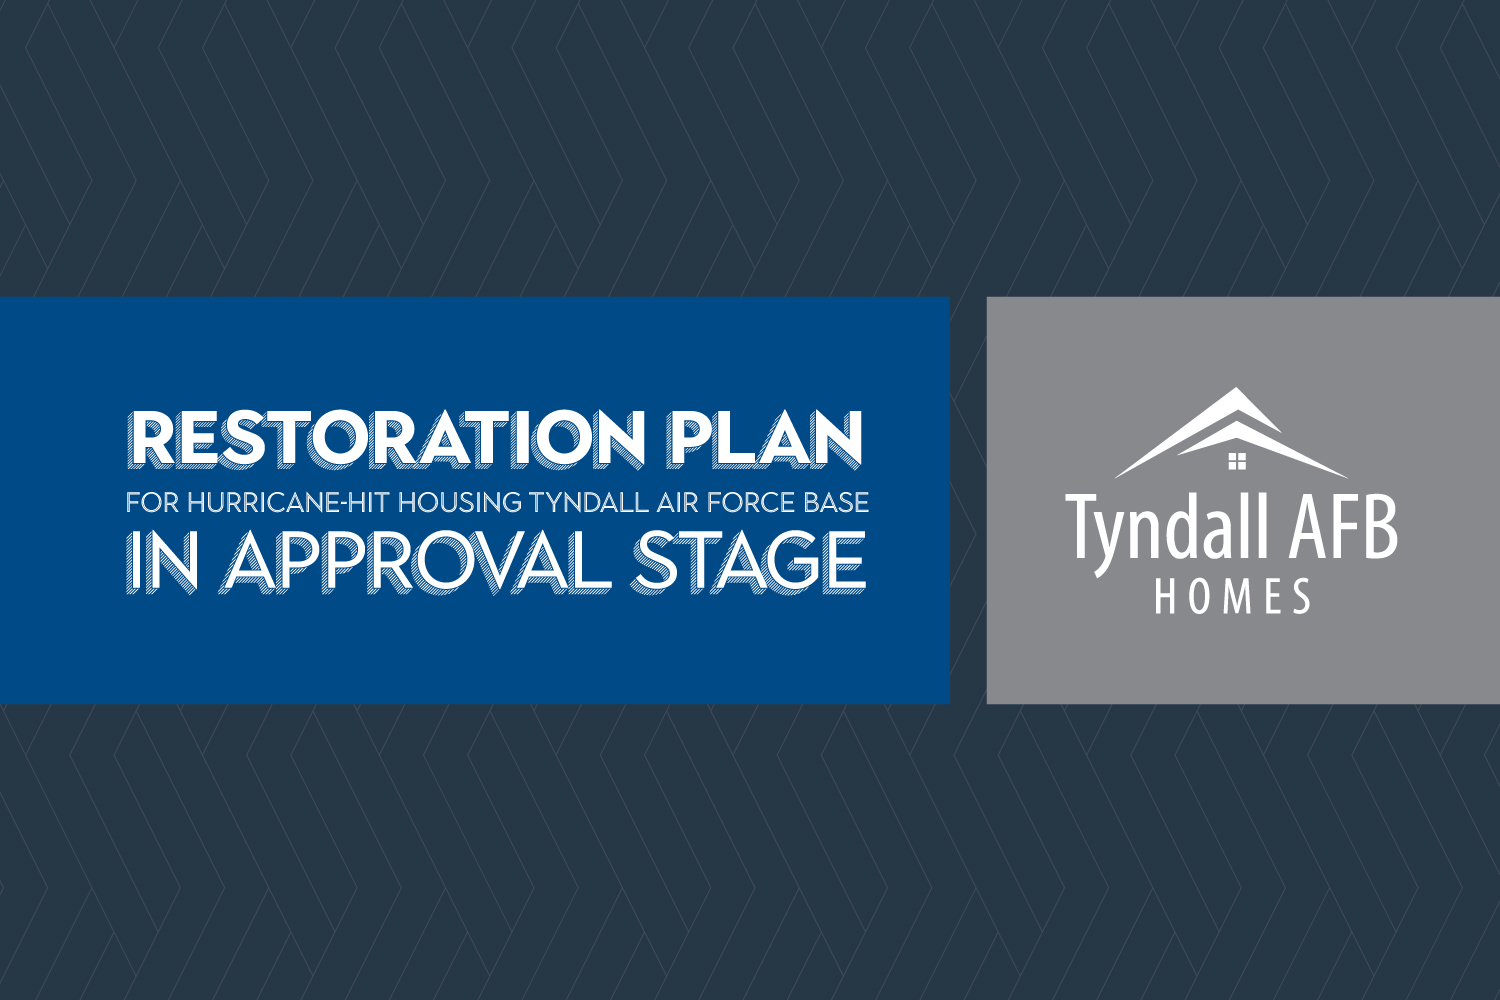 Restoration plan for hurricane-hit housing at Tyndall Air Force Base in approval stage